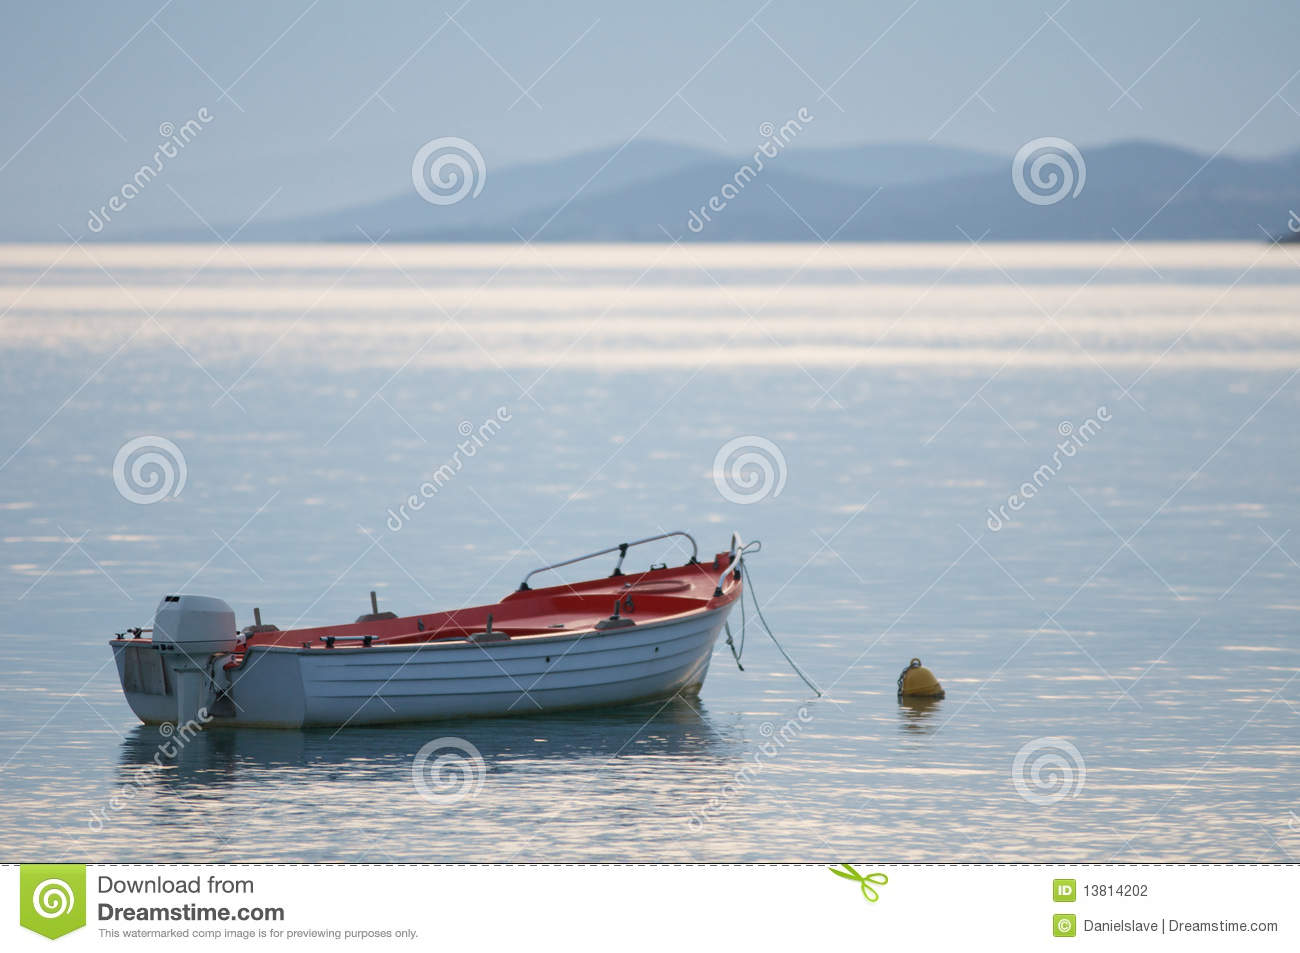 Boat moored on calm sea stock photo. Image of motor, outboard - 13814202